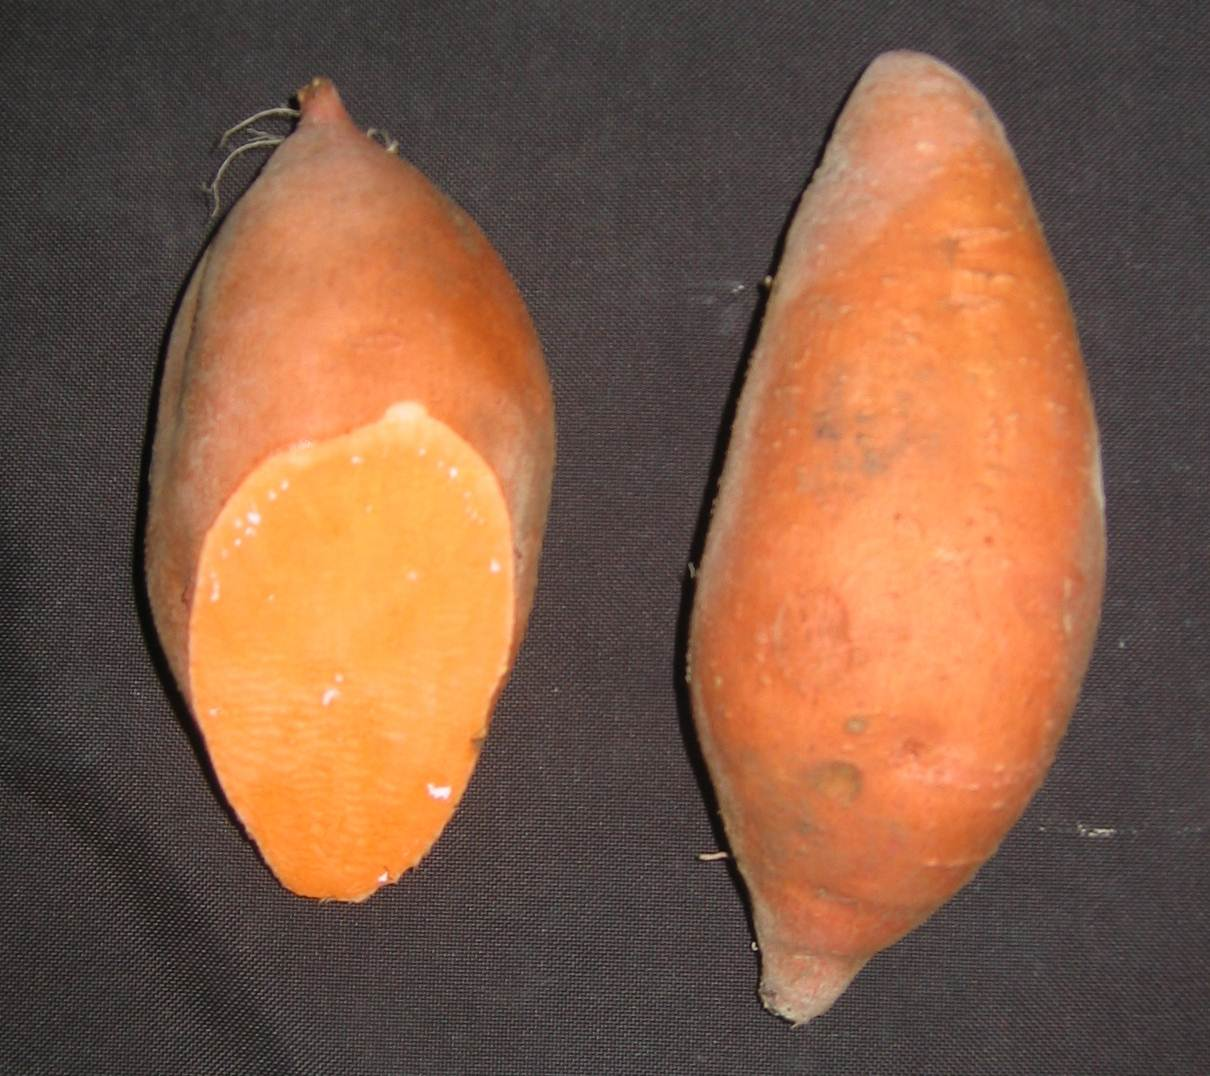 Two sweet potatoes with red skin. One has end cut revealing deep orange flesh.